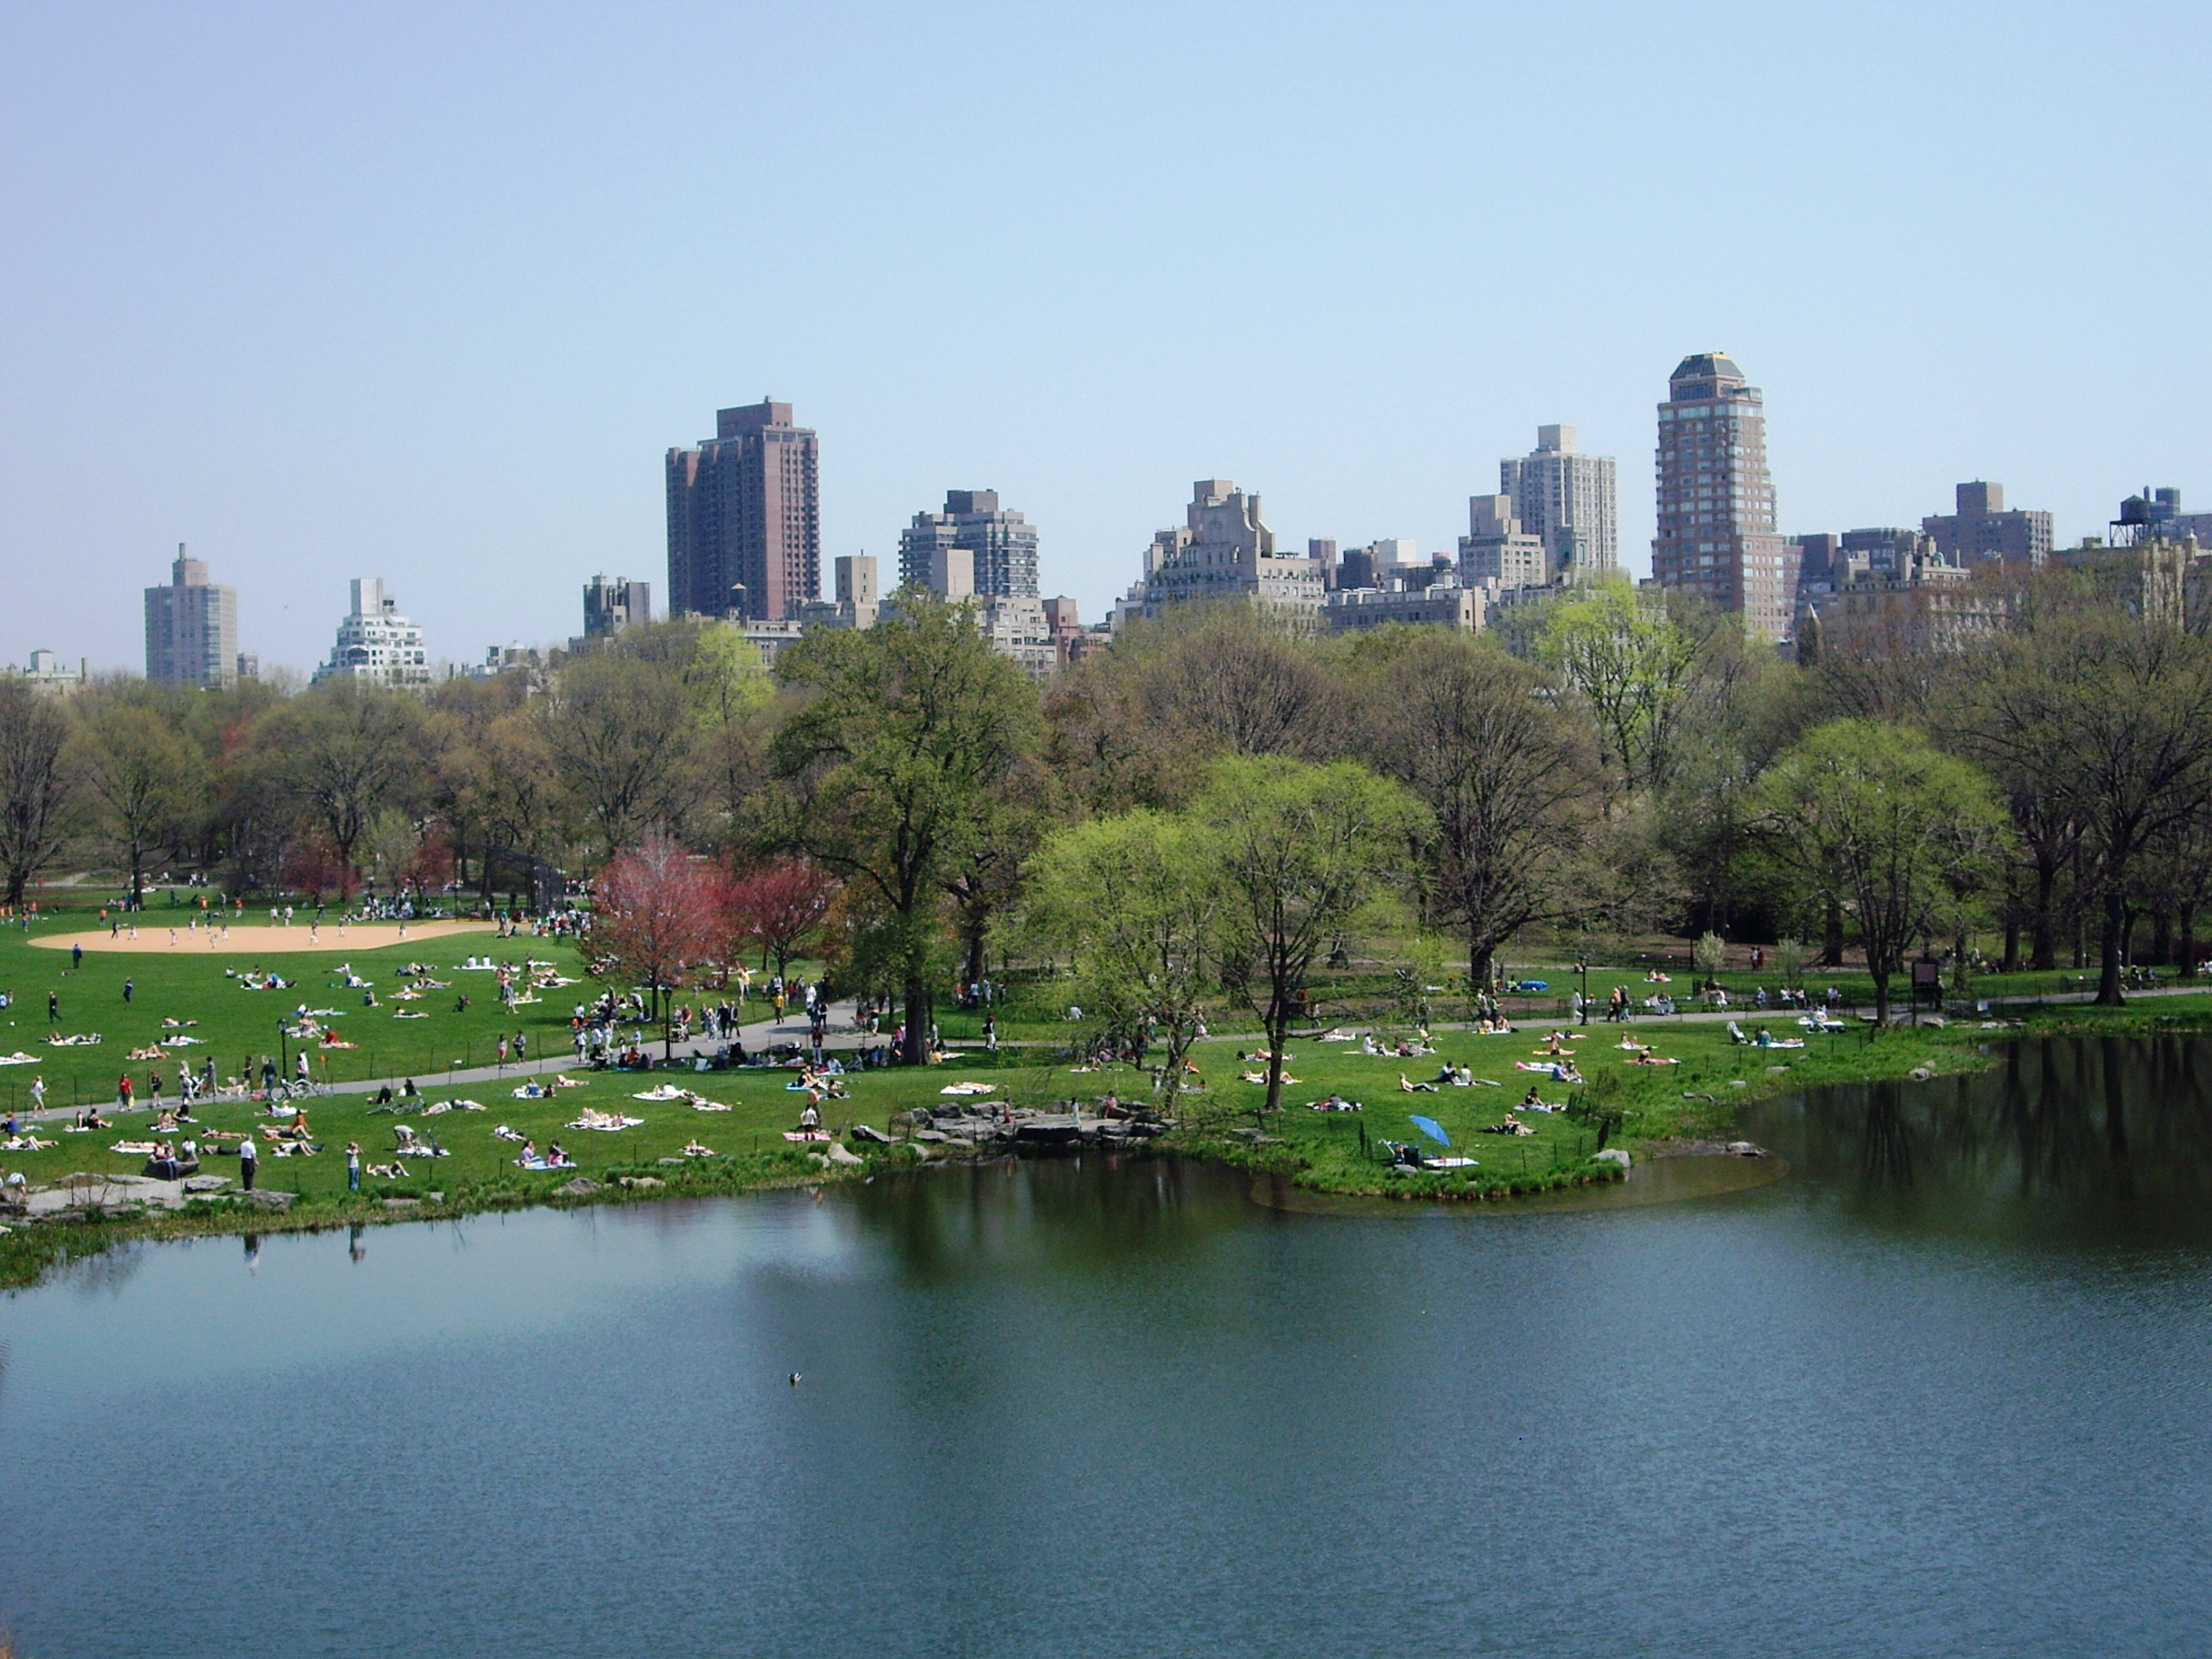 NE View of Central Park from Belvedere Castle